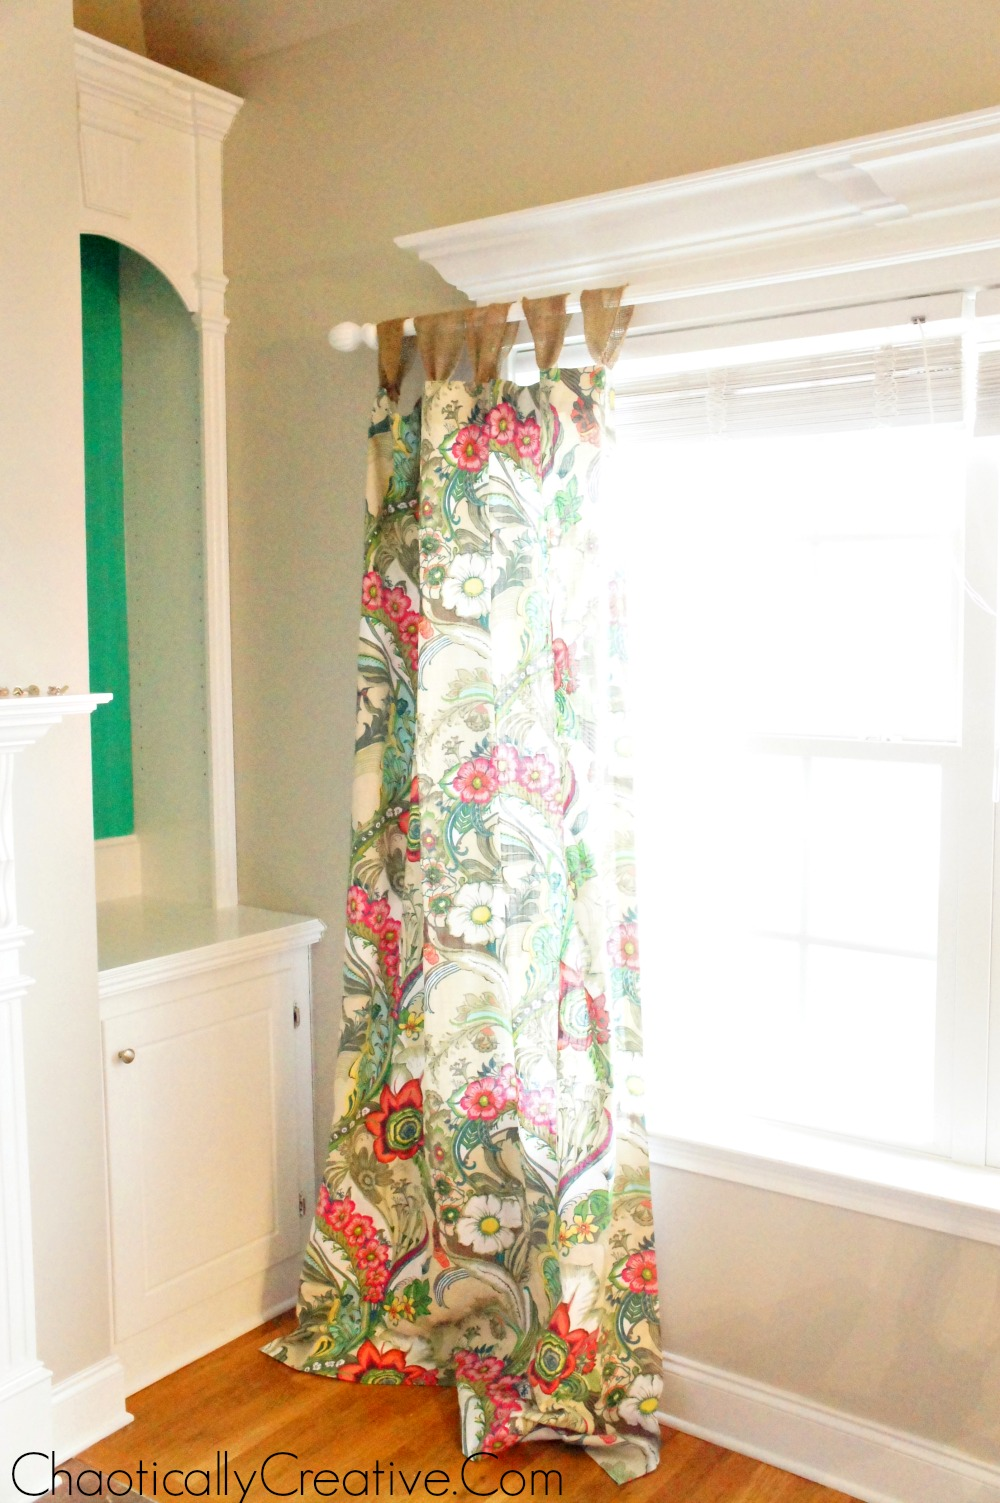 How To Hang Curtain Rods On Windows With Decorative Molding Chaotically Creative